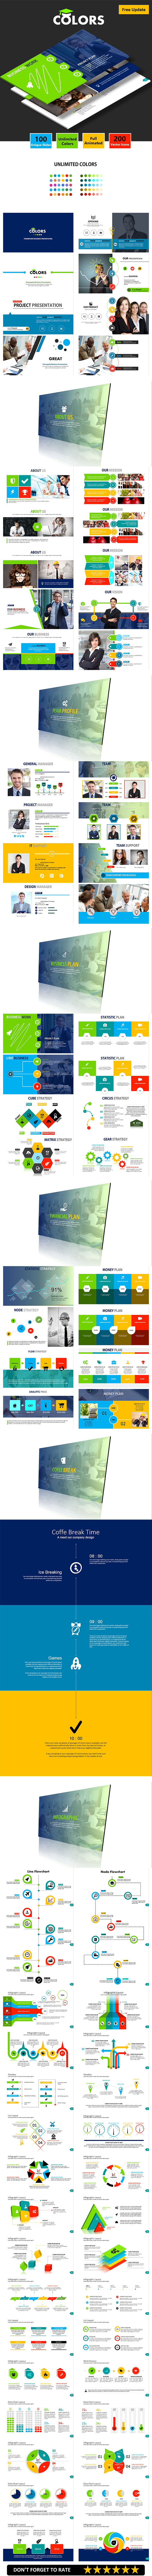 COLORS - Powerpoint Business Presentation - Business PowerPoint Templates